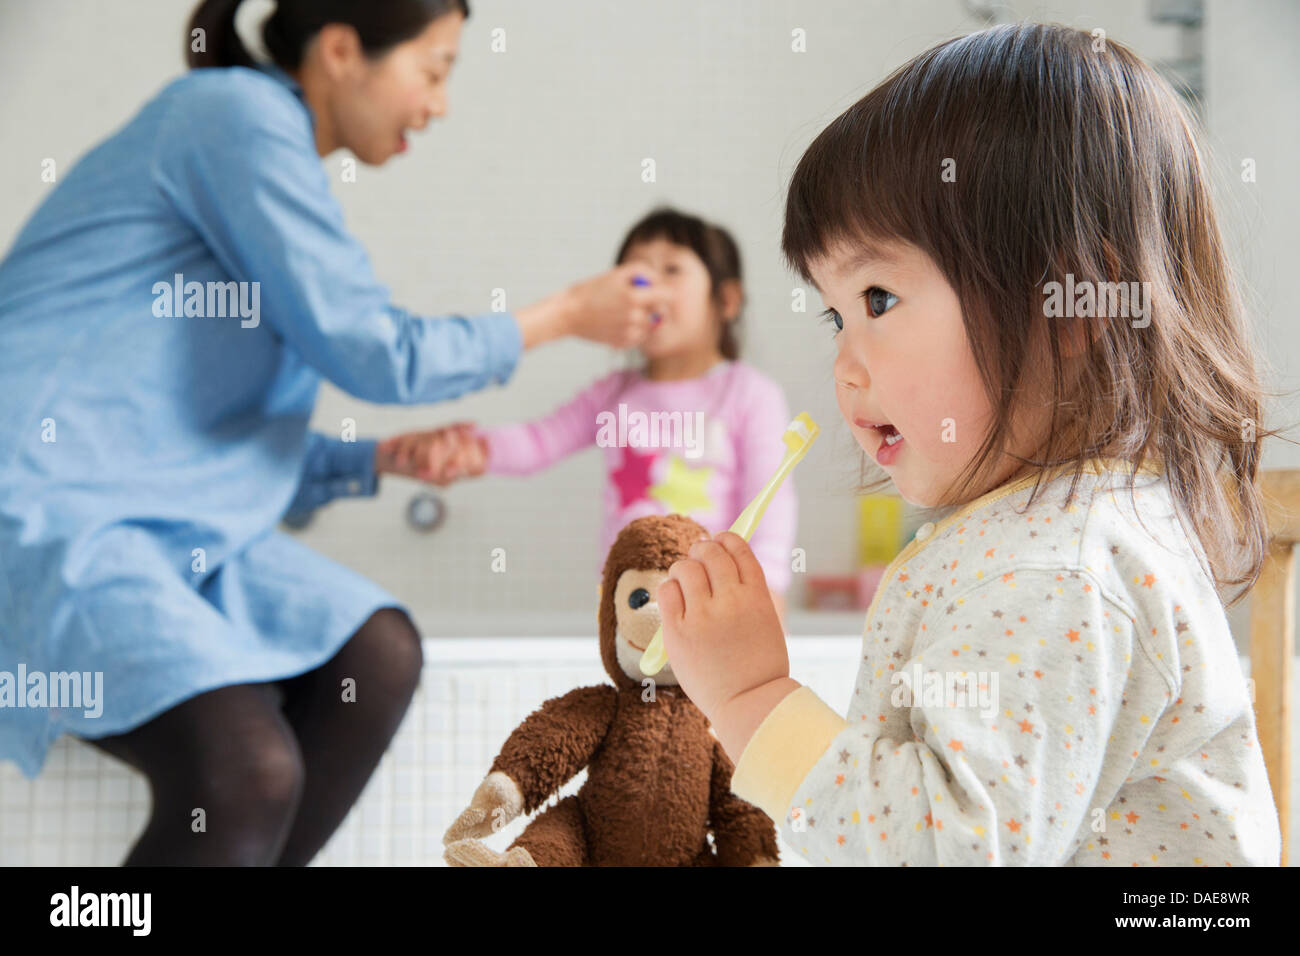 Female toddler with cuddly toy and toothbrush - Stock Image